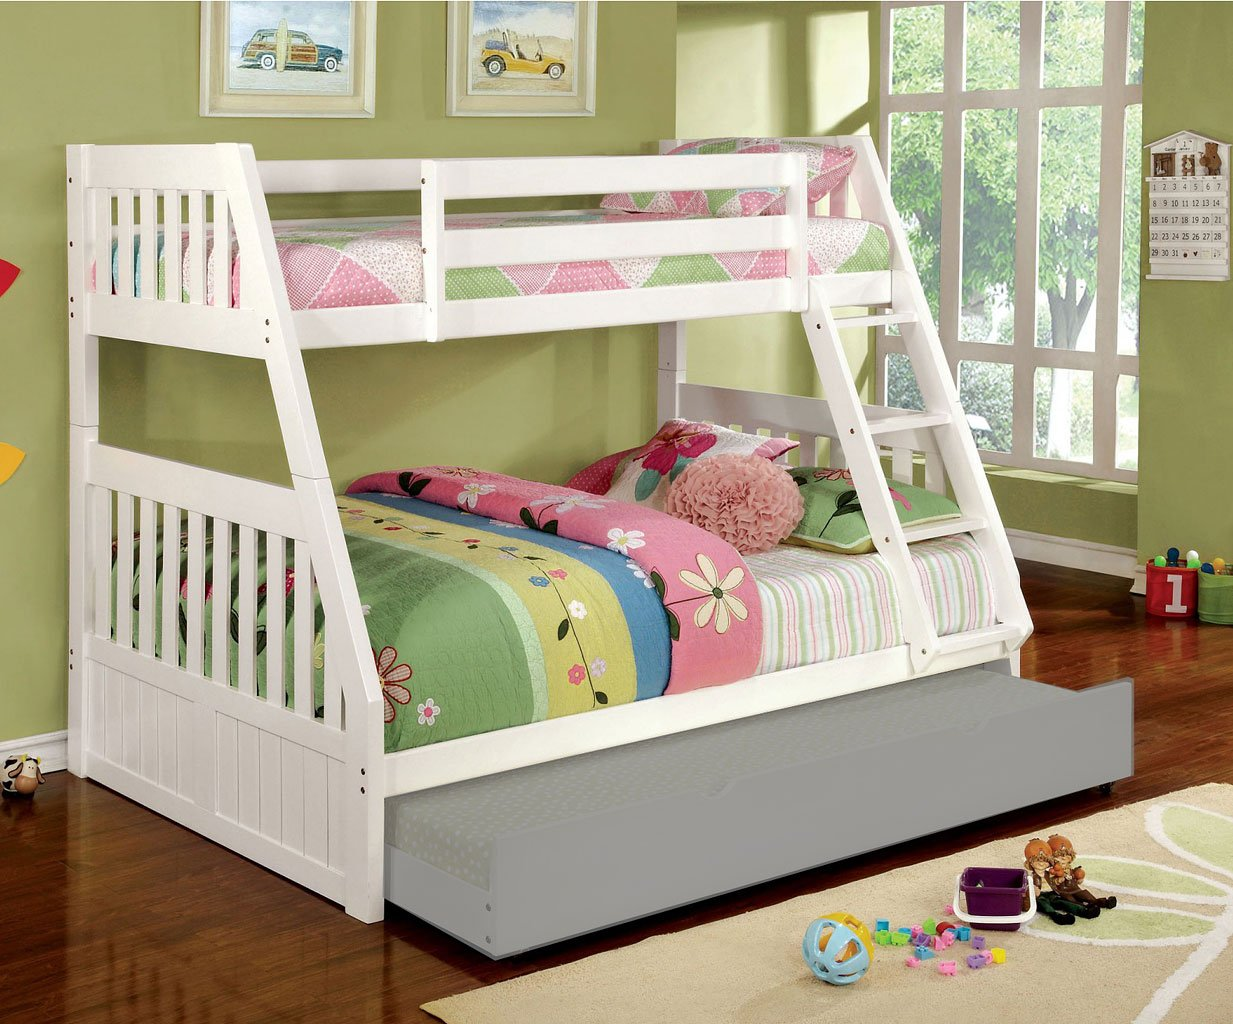 Canberra Twin/ Full Bunk Bed (White)